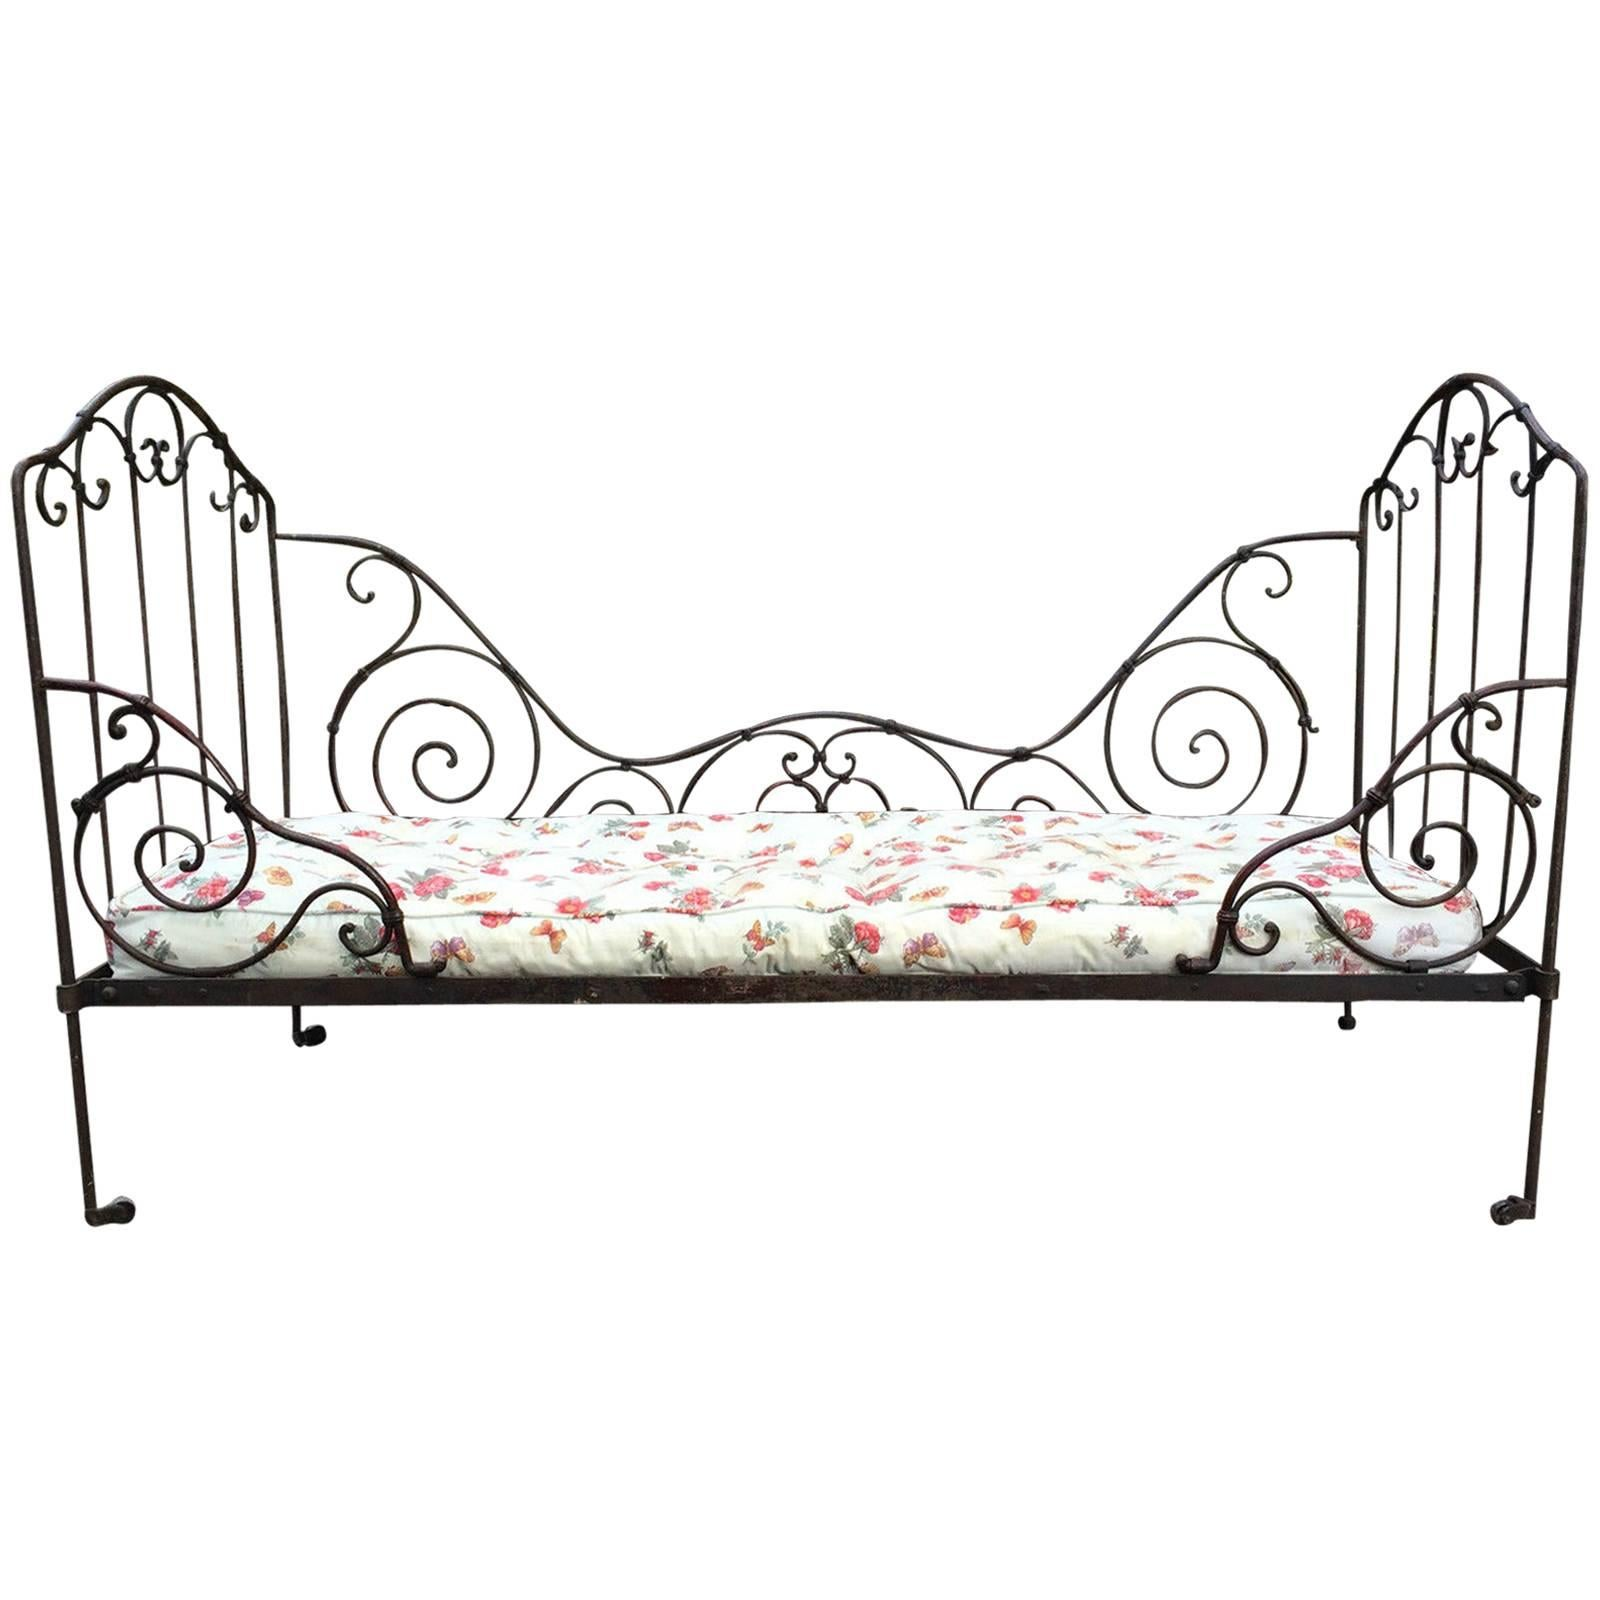 Antique Wrought Iron Beds 1 For Sale On 1stdibs